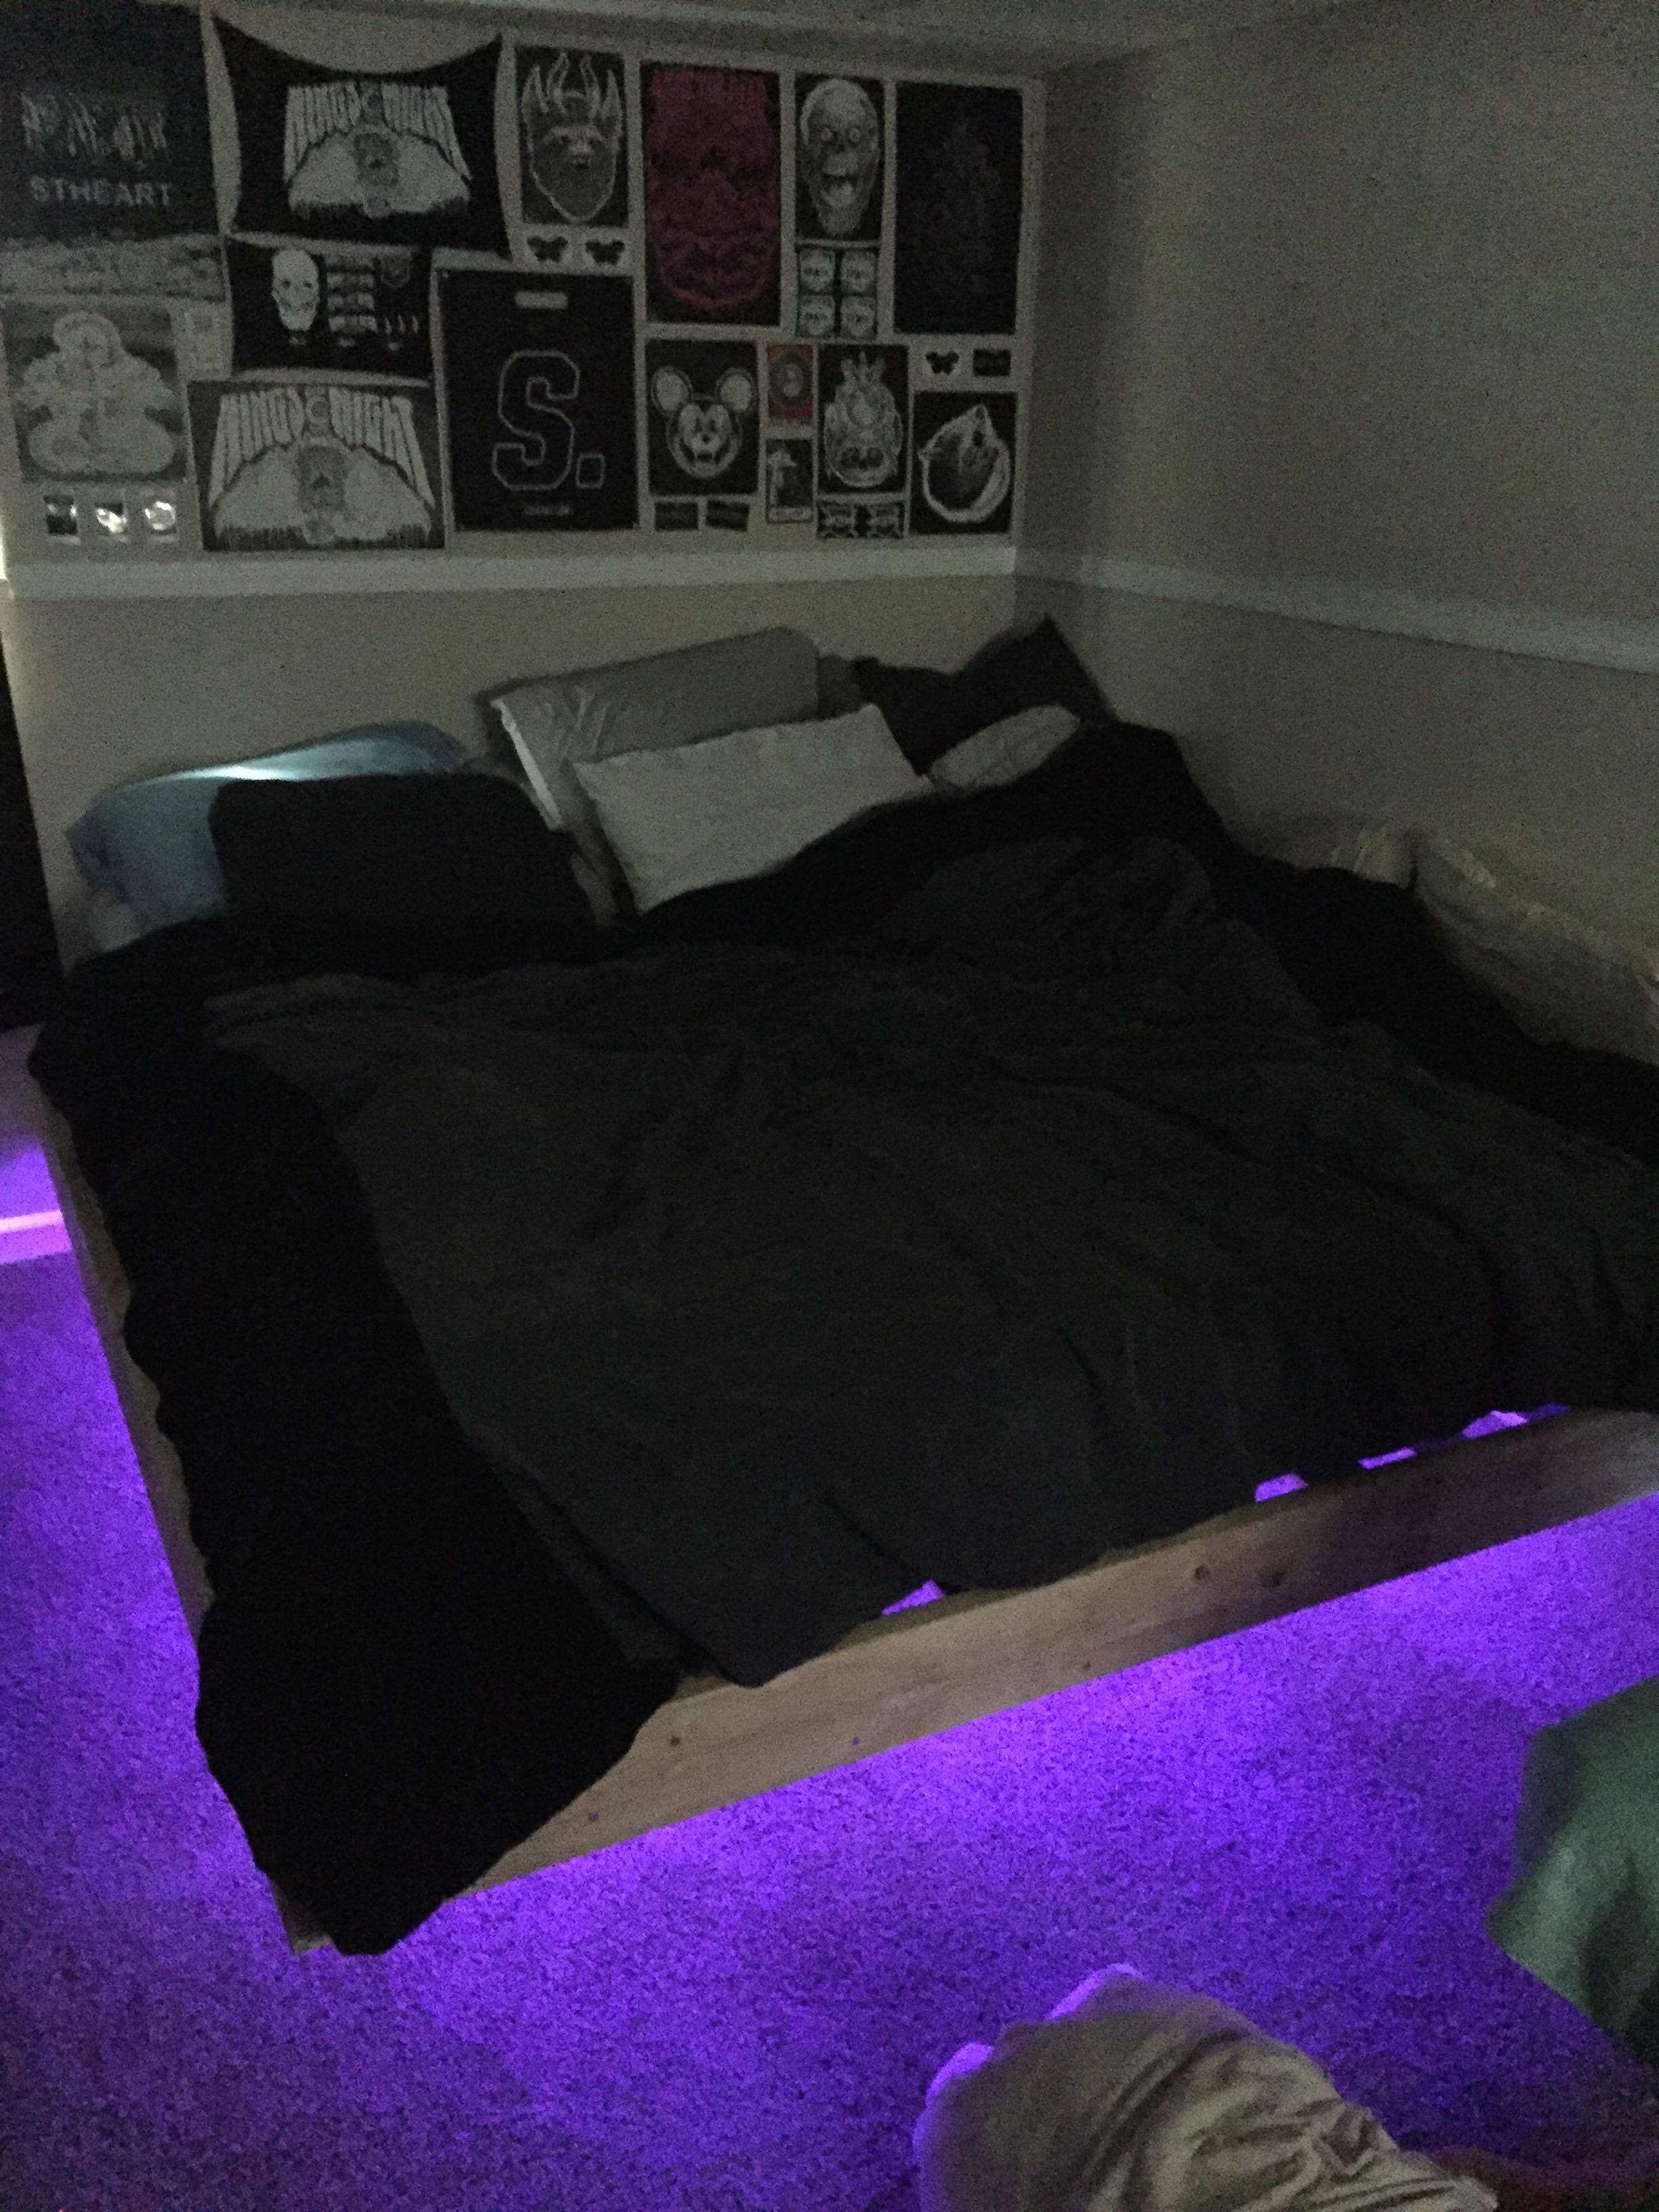 First Ever Diy Project Floating Bed With Led Lights Handmade Crafts Howto Diy Floating Bed Bed With Led Lights Floating Bed Diy